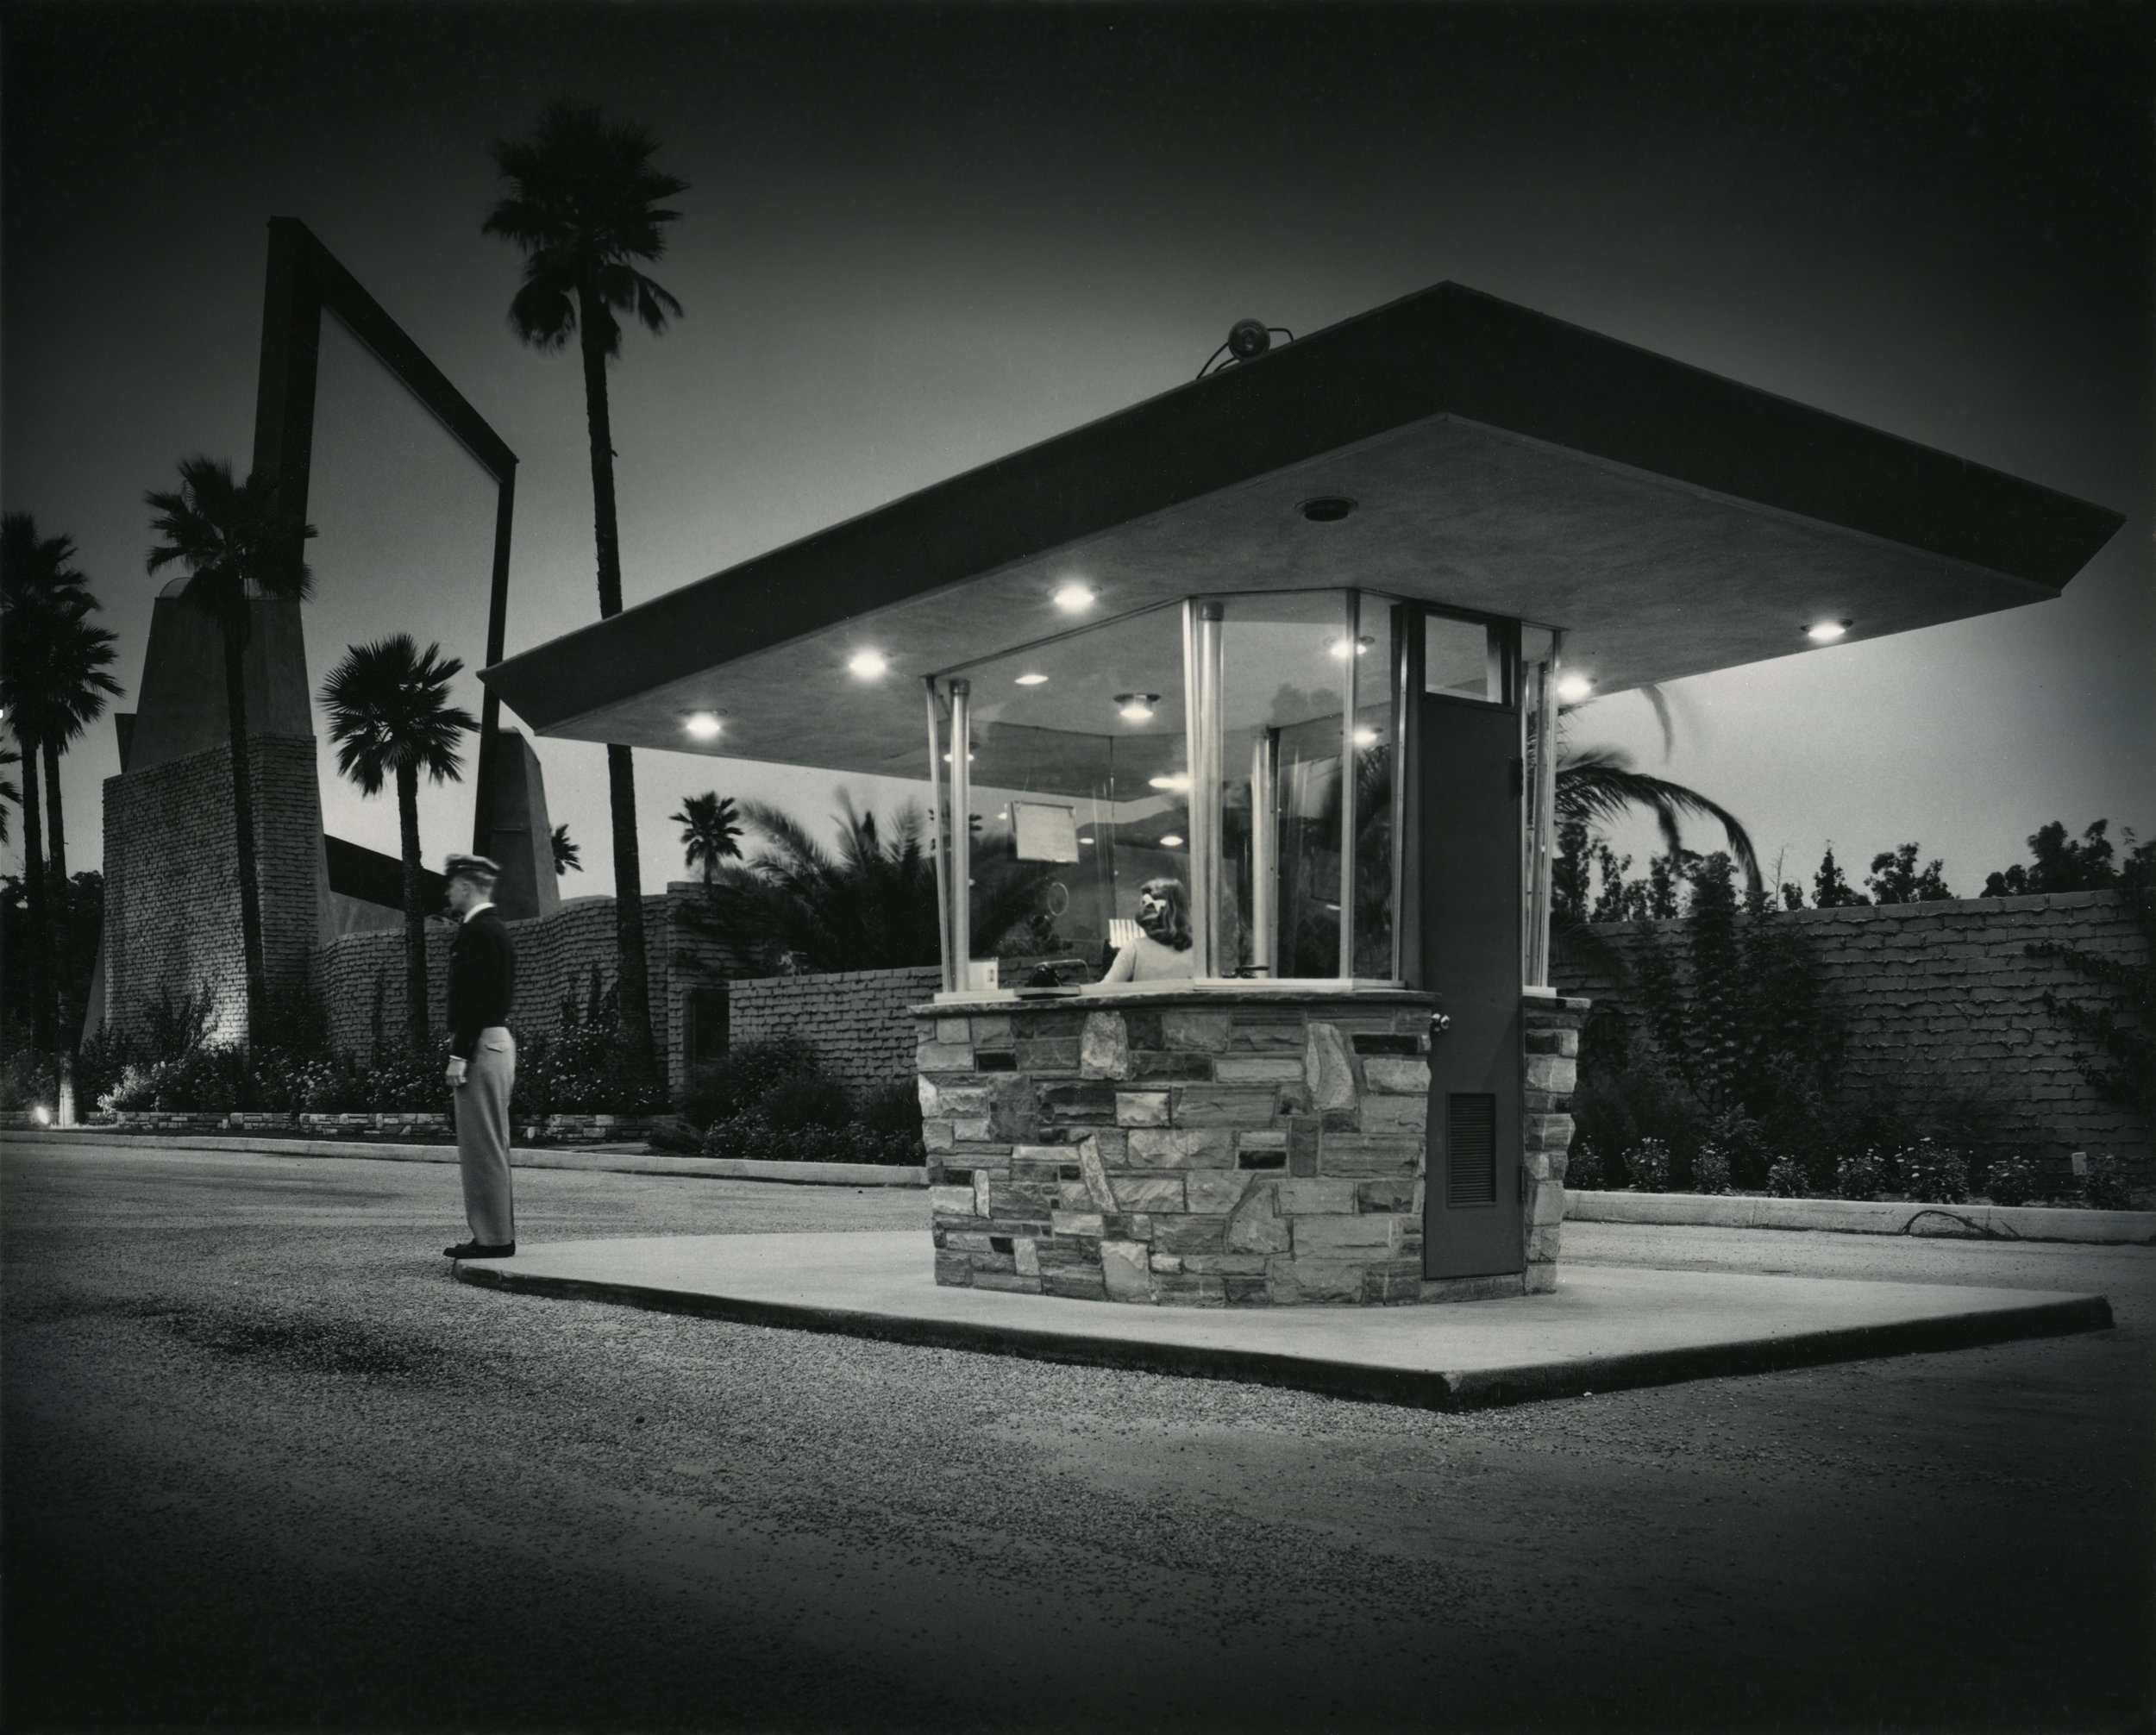 Julius Shulman, Rubidoux Drive-In, 1951, Gelatin silver print, 8 x 10 inches, Collection of Ruhnau Clarke Architects, © J. Paul Getty Trust. Getty Research Institute, Los Angeles.